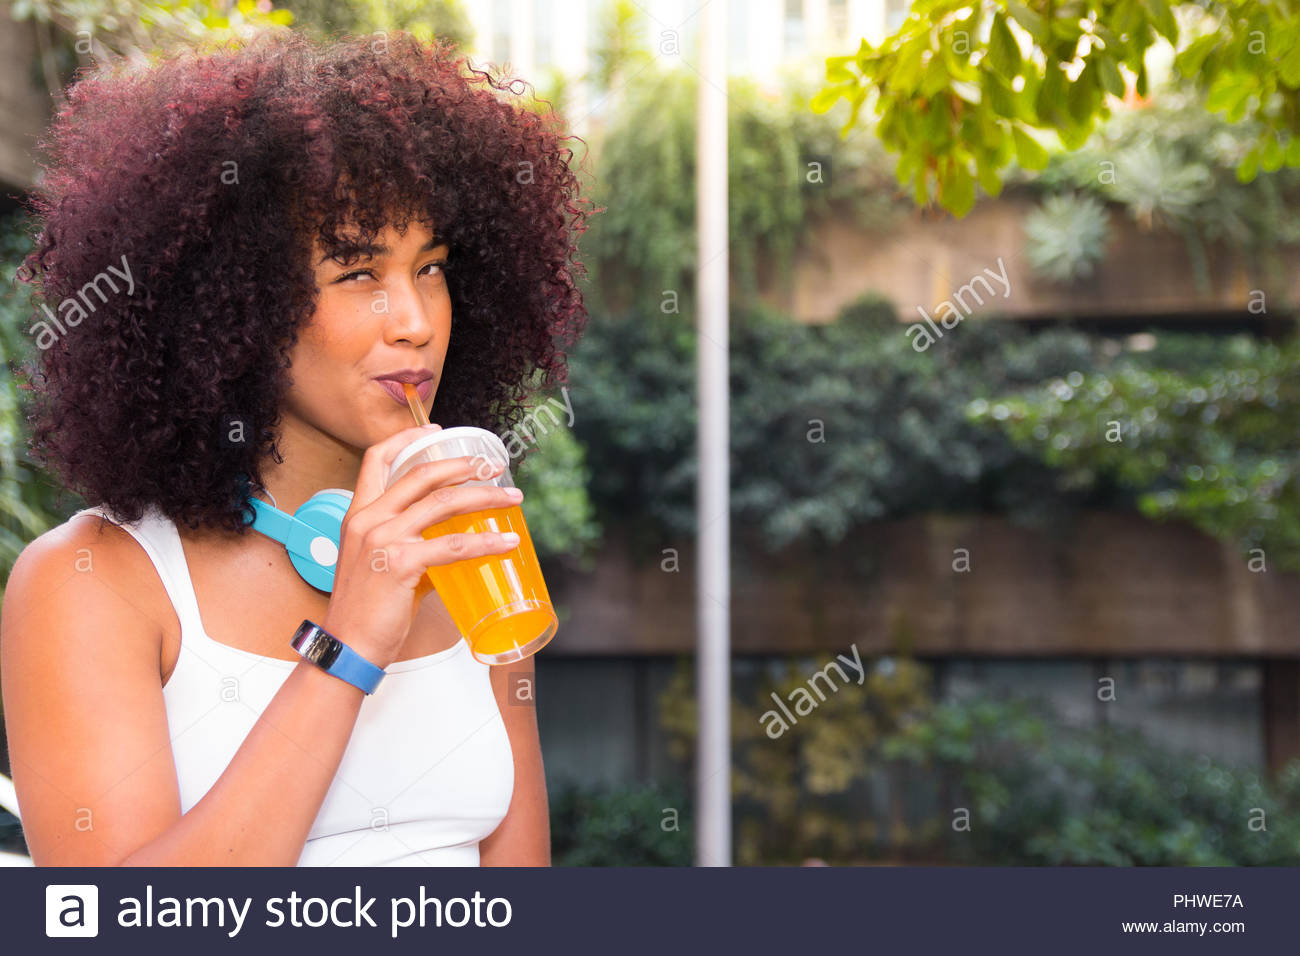 Portrait of gorgeous young woman drinking orange juice with headphones. She is black, on her early twenties, Afro style frizzy hair. building and tree - Stock Image